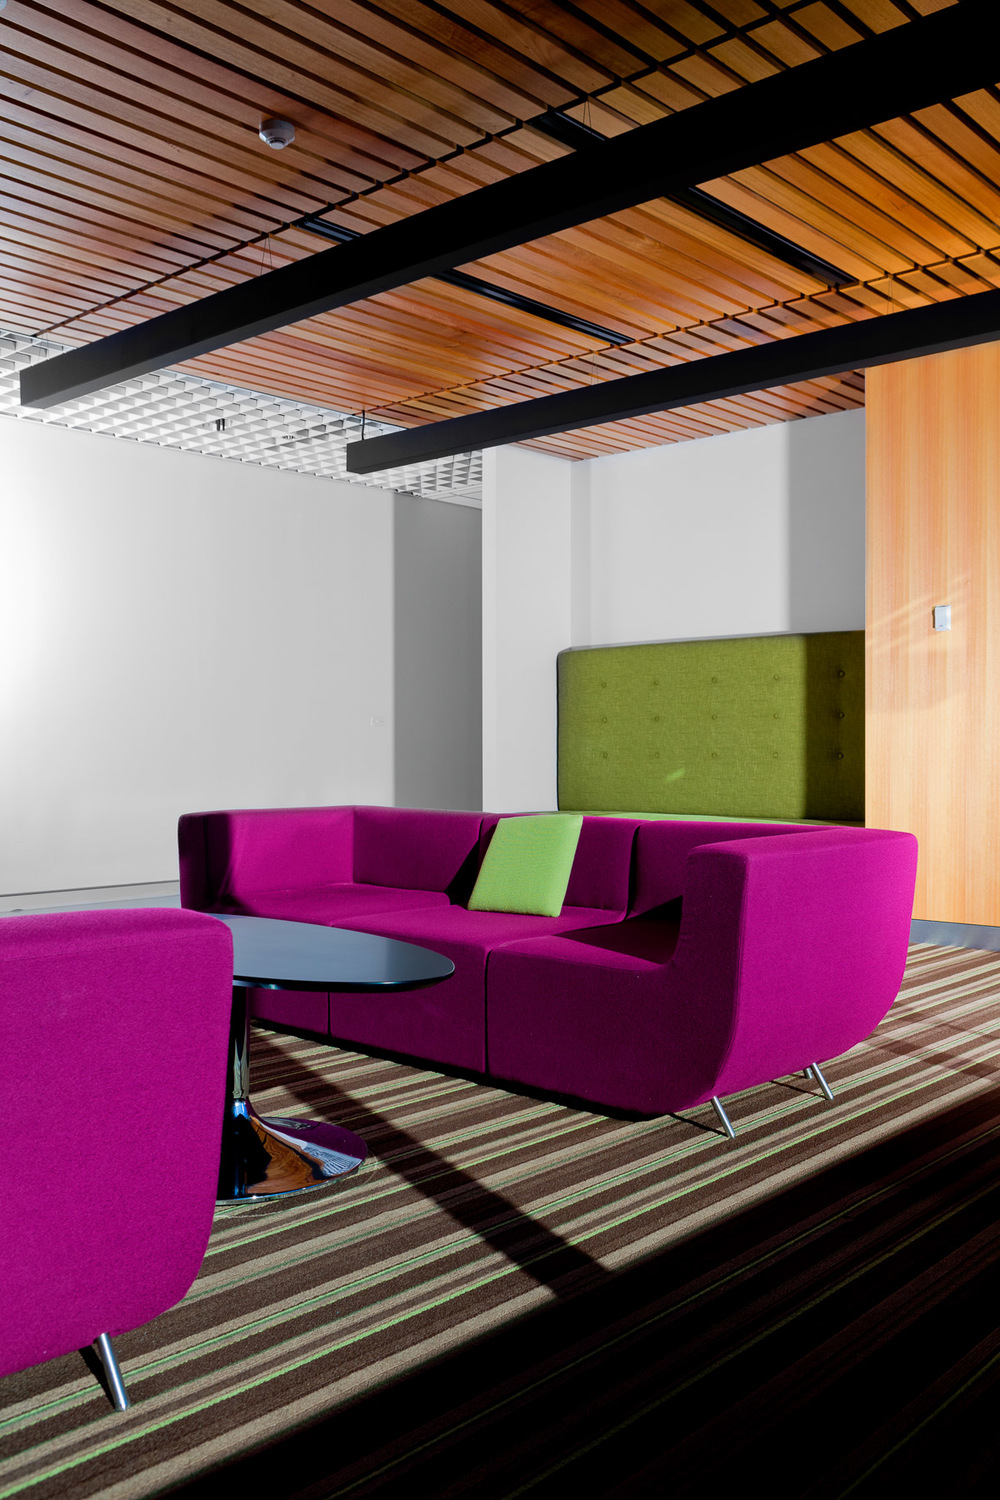 Interior office lounge space by Melbourne architecture photographer Stefan Postles